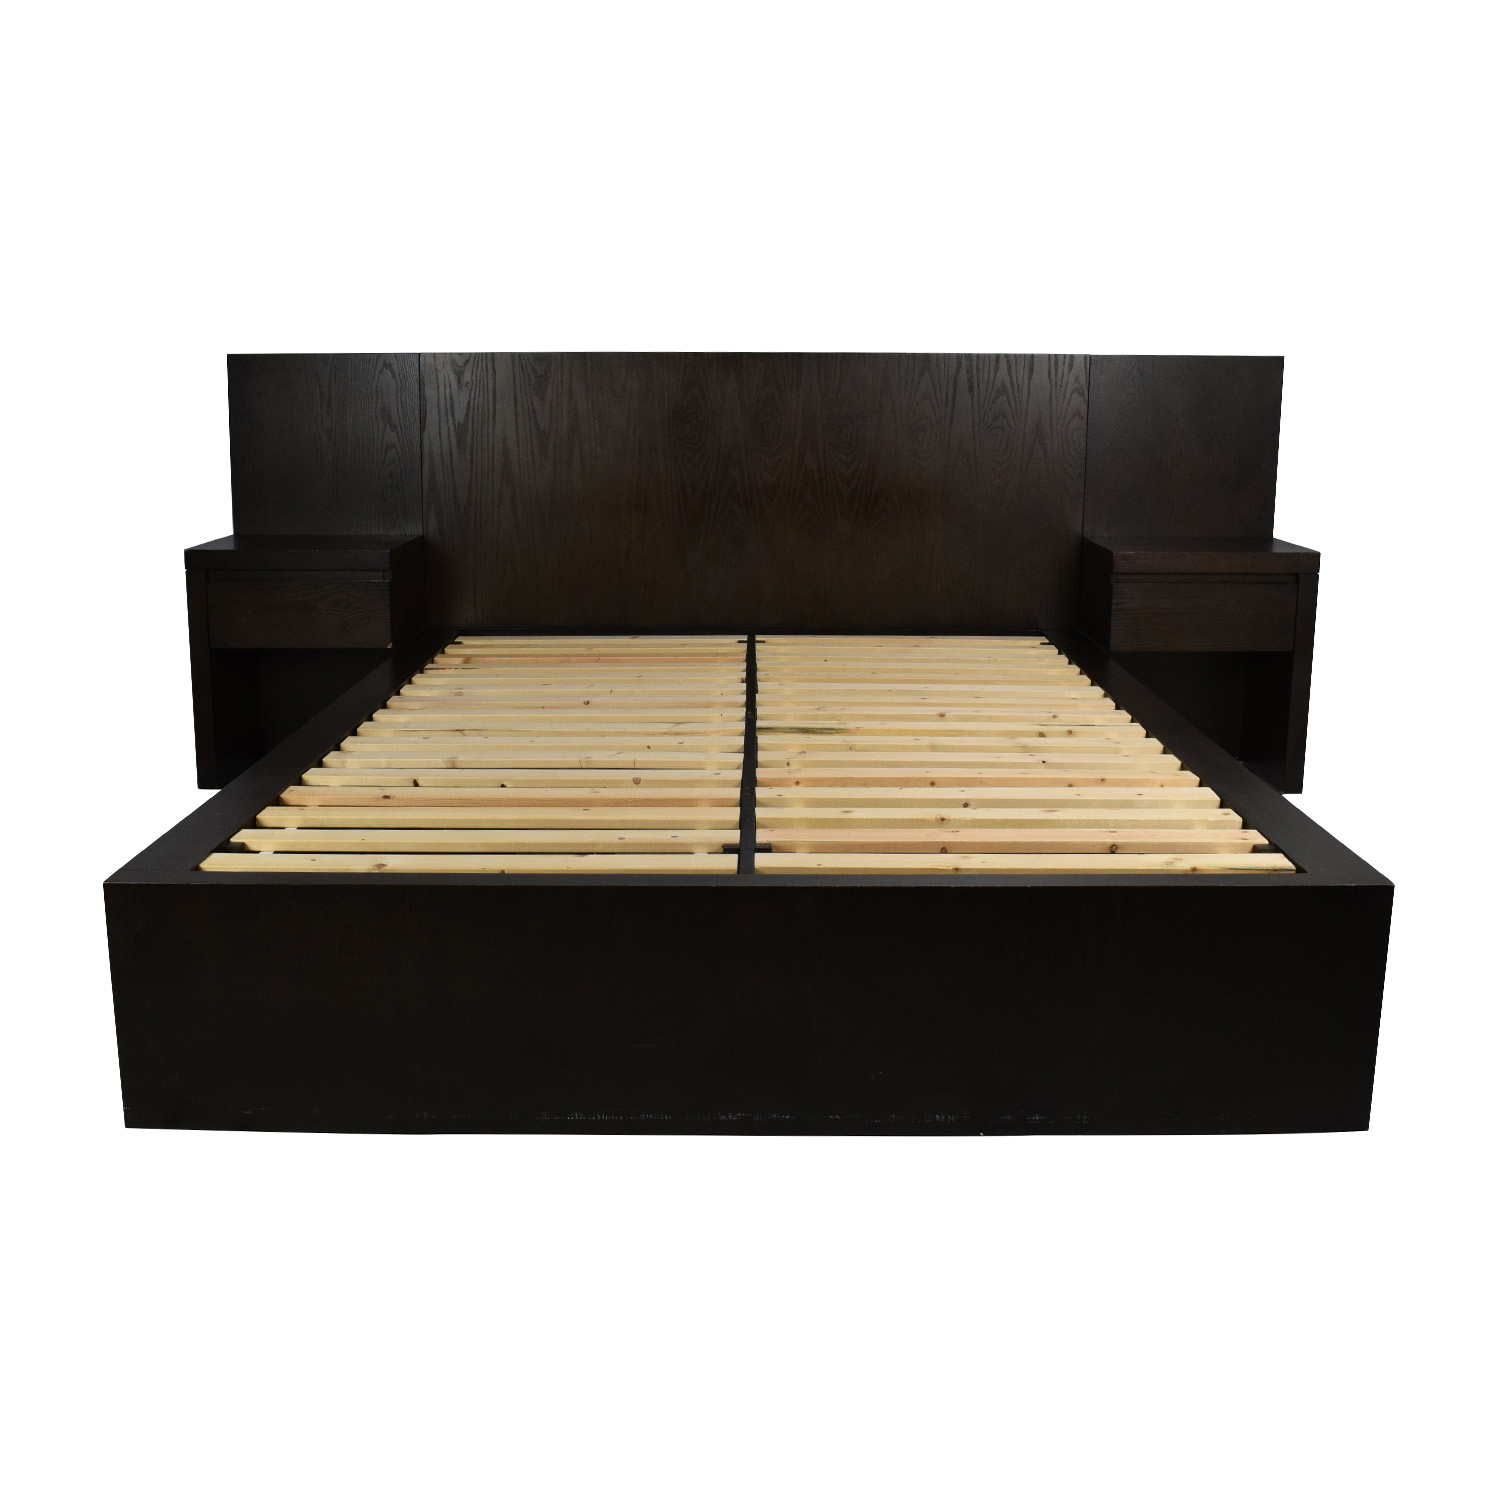 71 off west elm west elm queen size storage platform bed frame beds. Black Bedroom Furniture Sets. Home Design Ideas